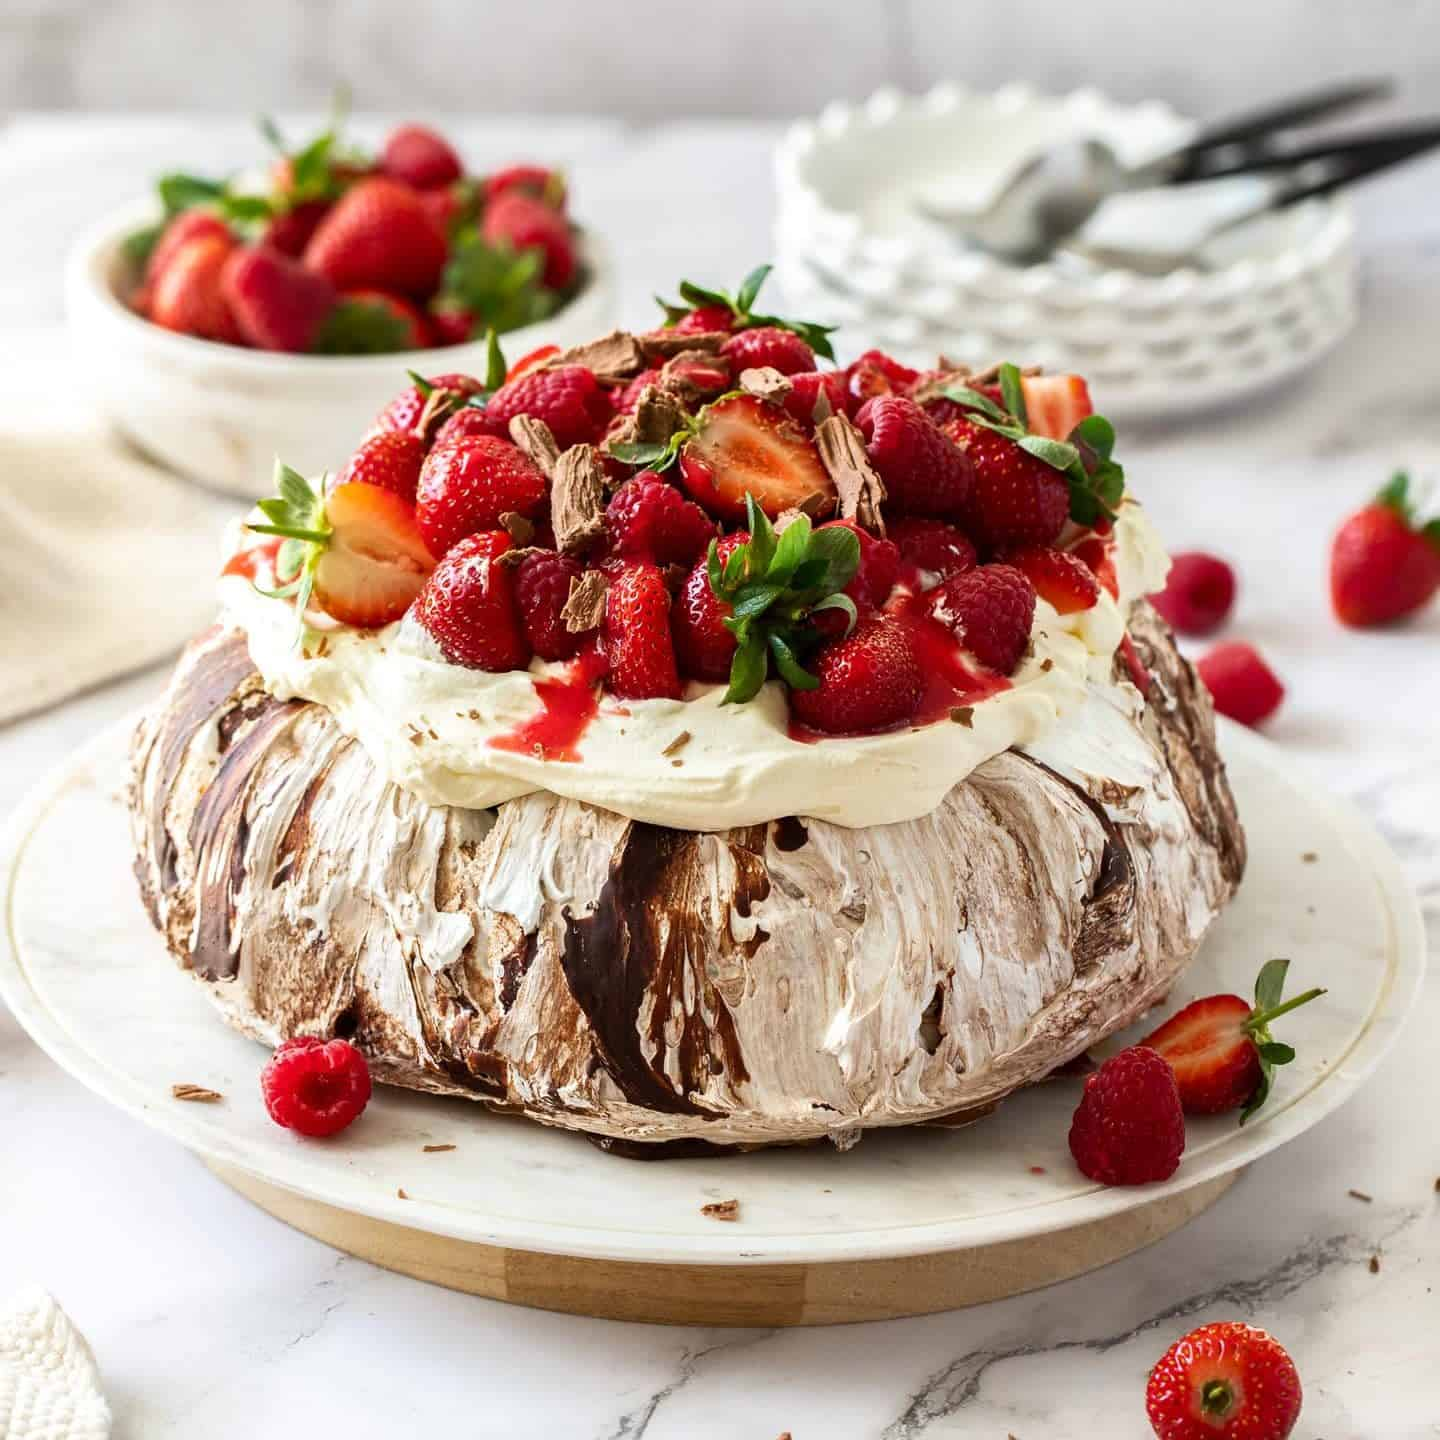 A chocolate pavlova topped with cream and berries on a white cake plate.